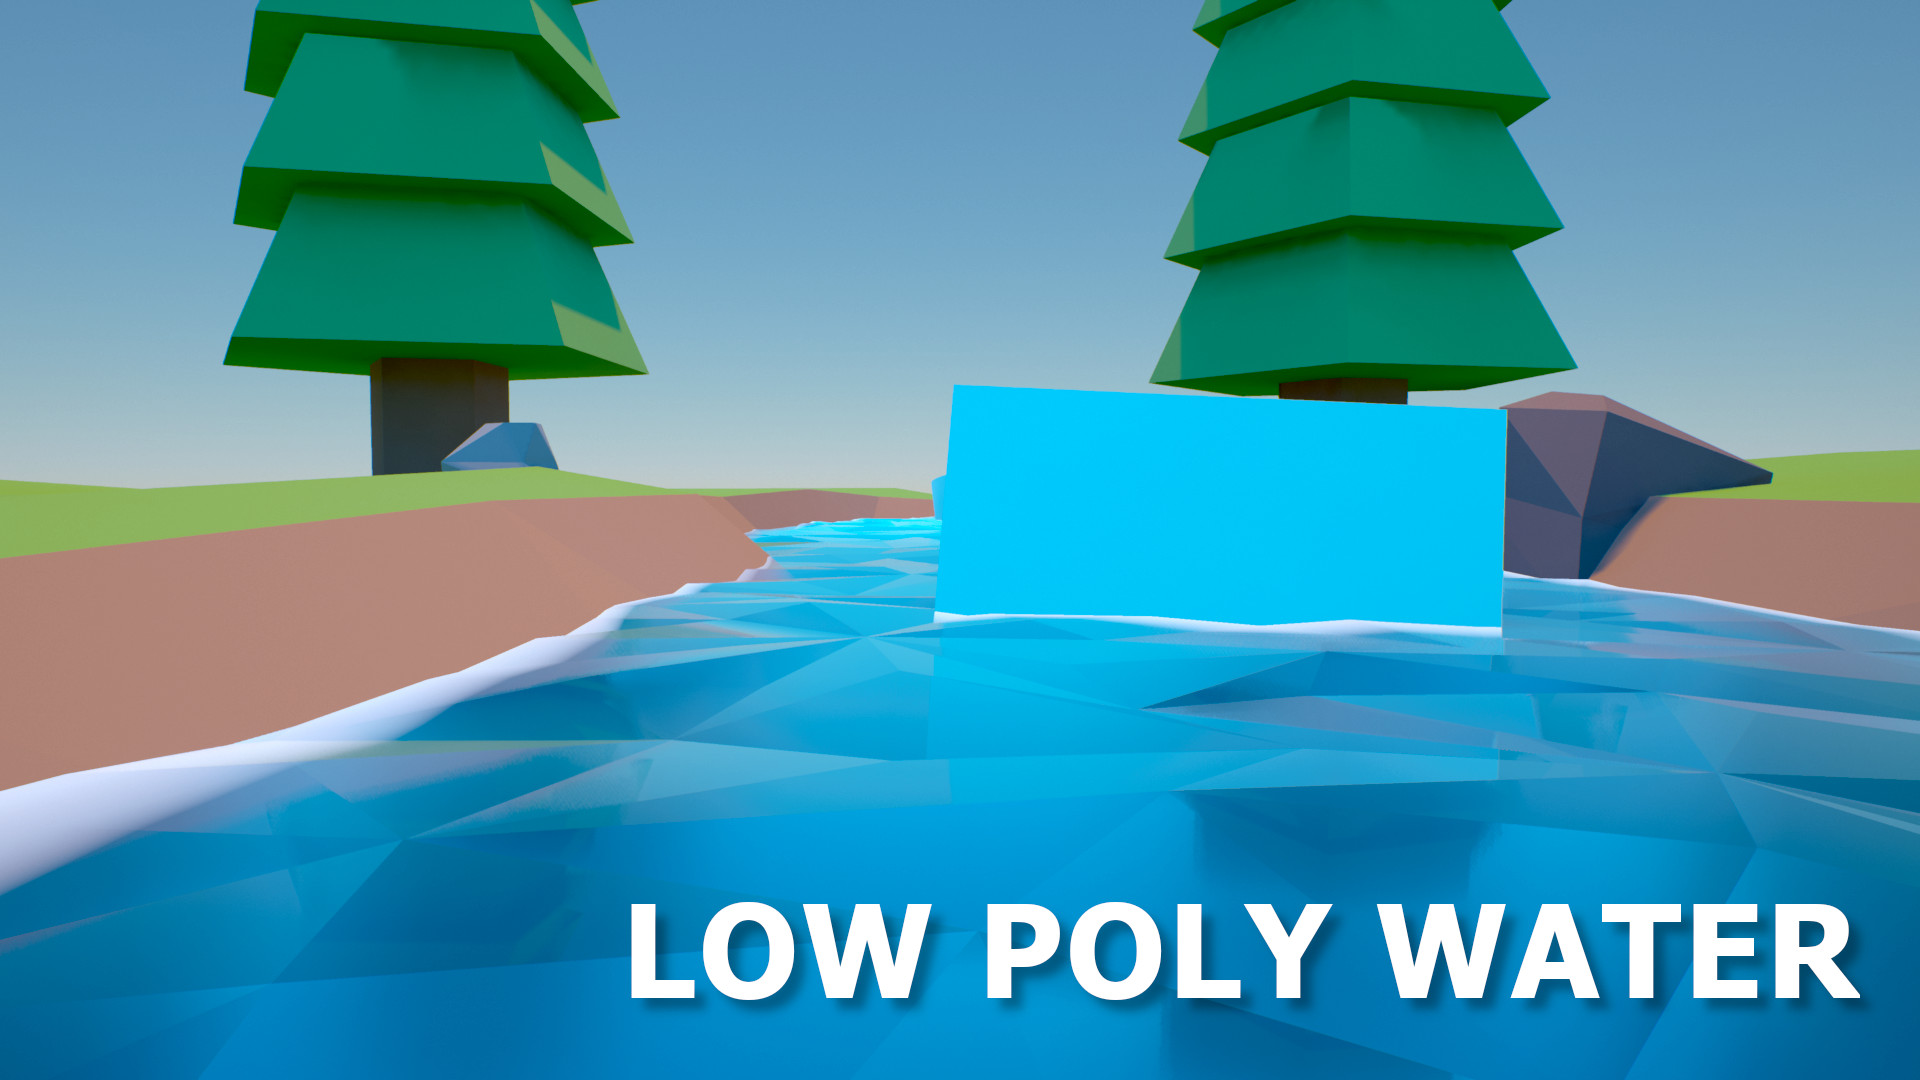 Low Poly Water Scene by Joshua Greenhough in Props - UE4